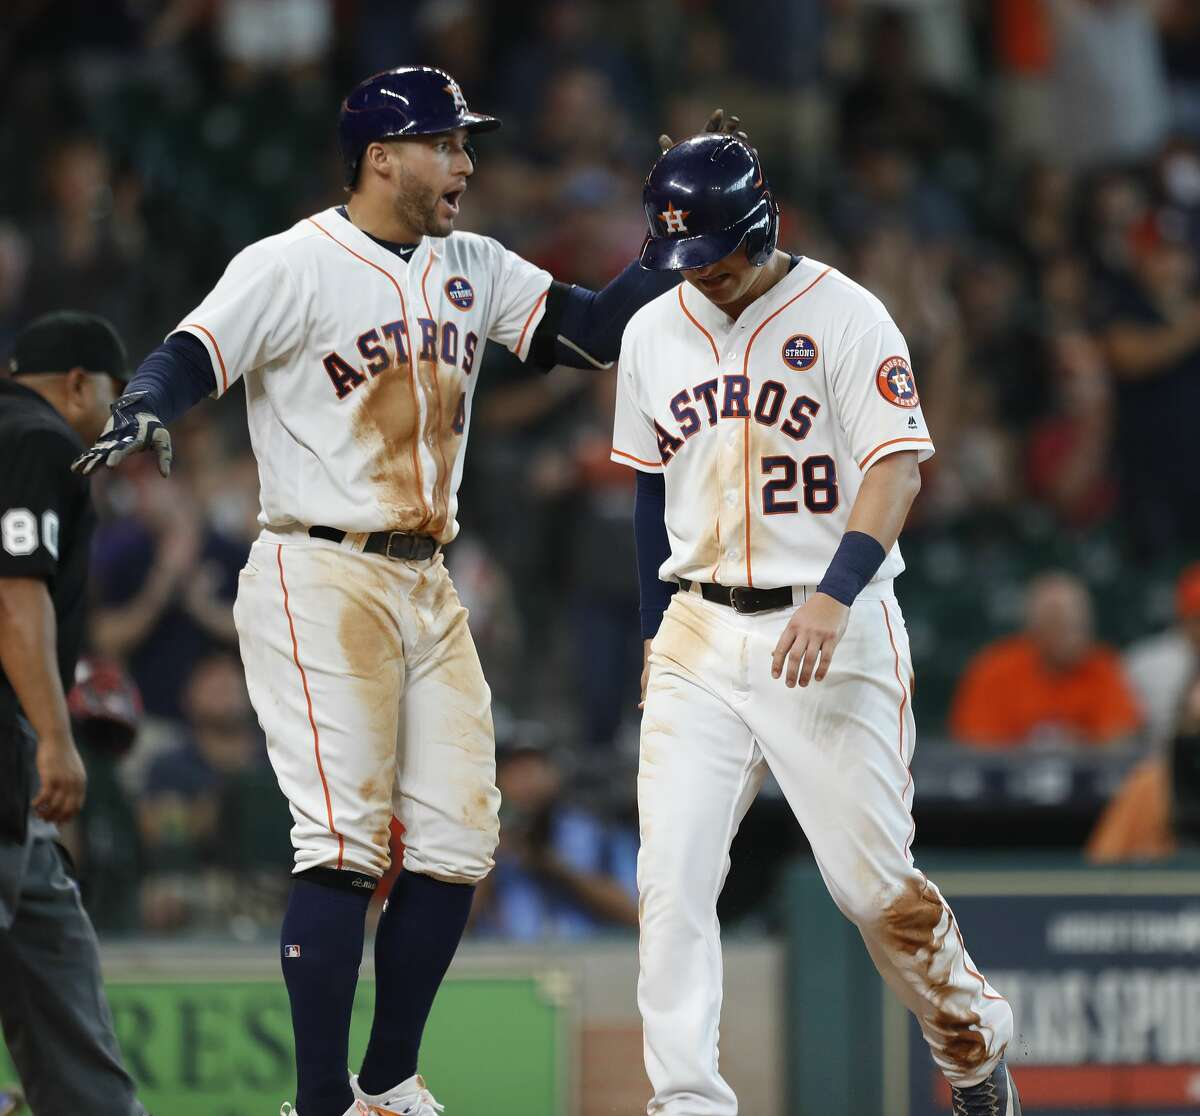 Houston Astros third baseman J.D. Davis (28) celebrates with George Springer after Davis scored a run on a single by Tony Kemp in the seventh inning of an MLB baseball game at Minute Maid Park, Saturday, Sept. 2, 2017, in Houston. This is the first professional sporting event in the city since Tropical Storm Harvey. ( Karen Warren / Houston Chronicle )